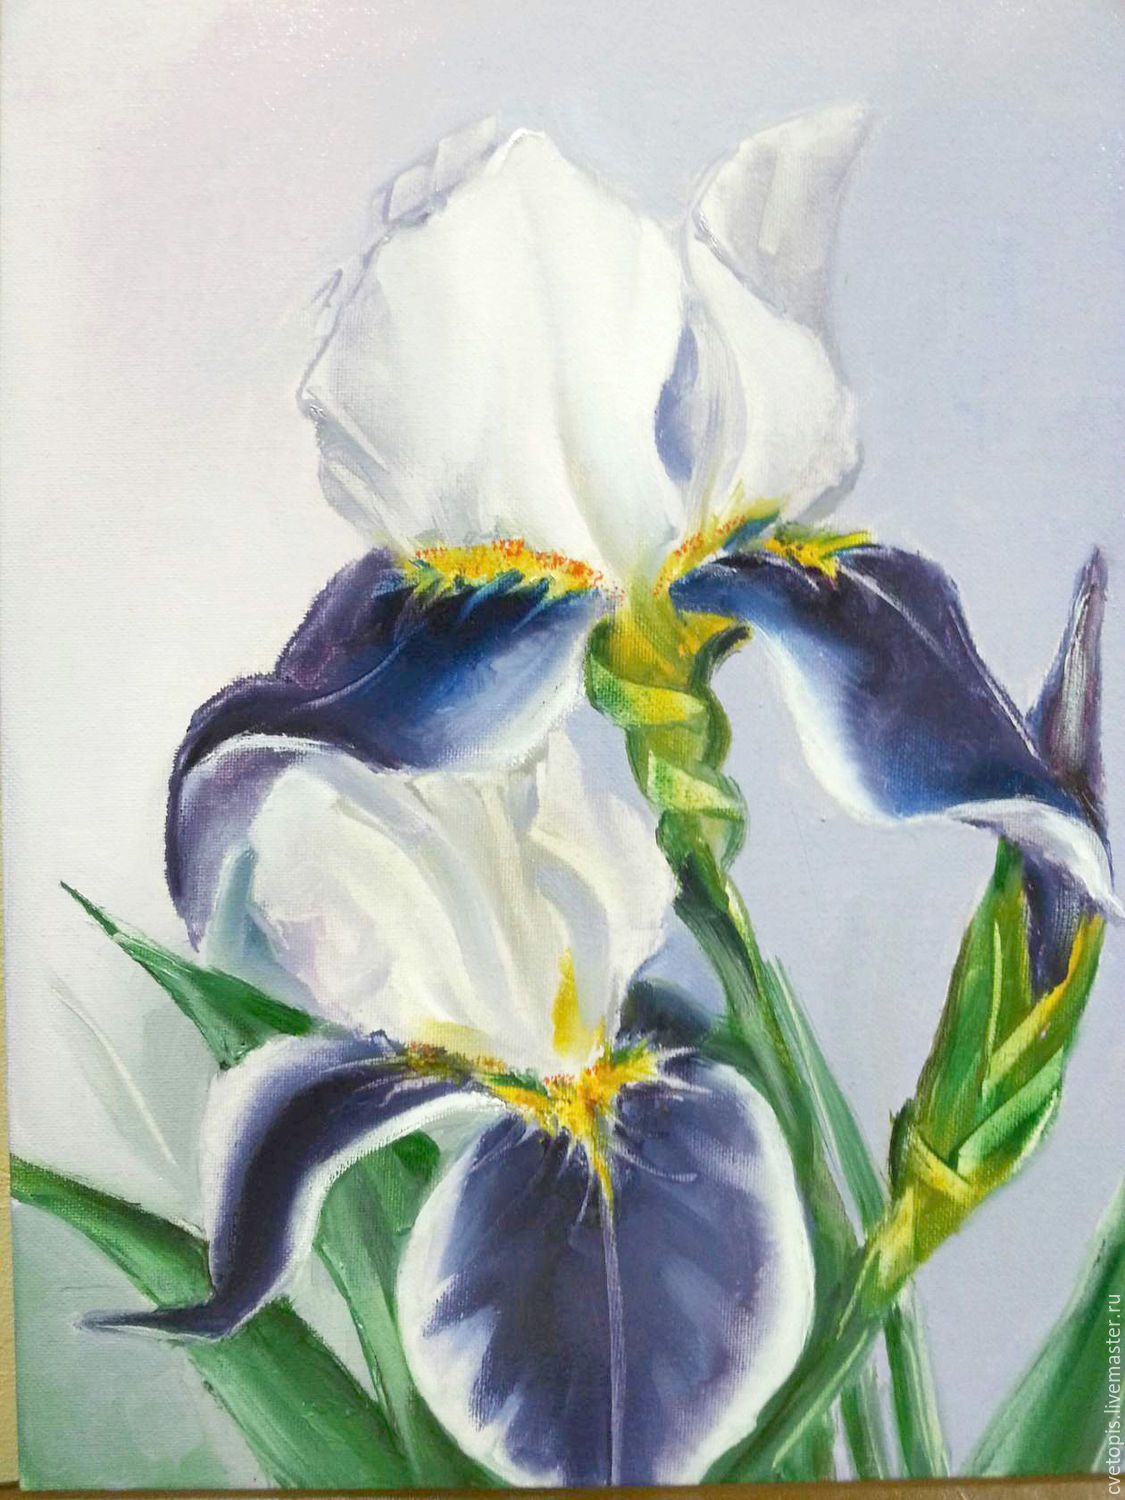 Oil painting irises air shop online on livemaster with shipping flower paintings handmade livemaster handmade buy oil painting irises air izmirmasajfo